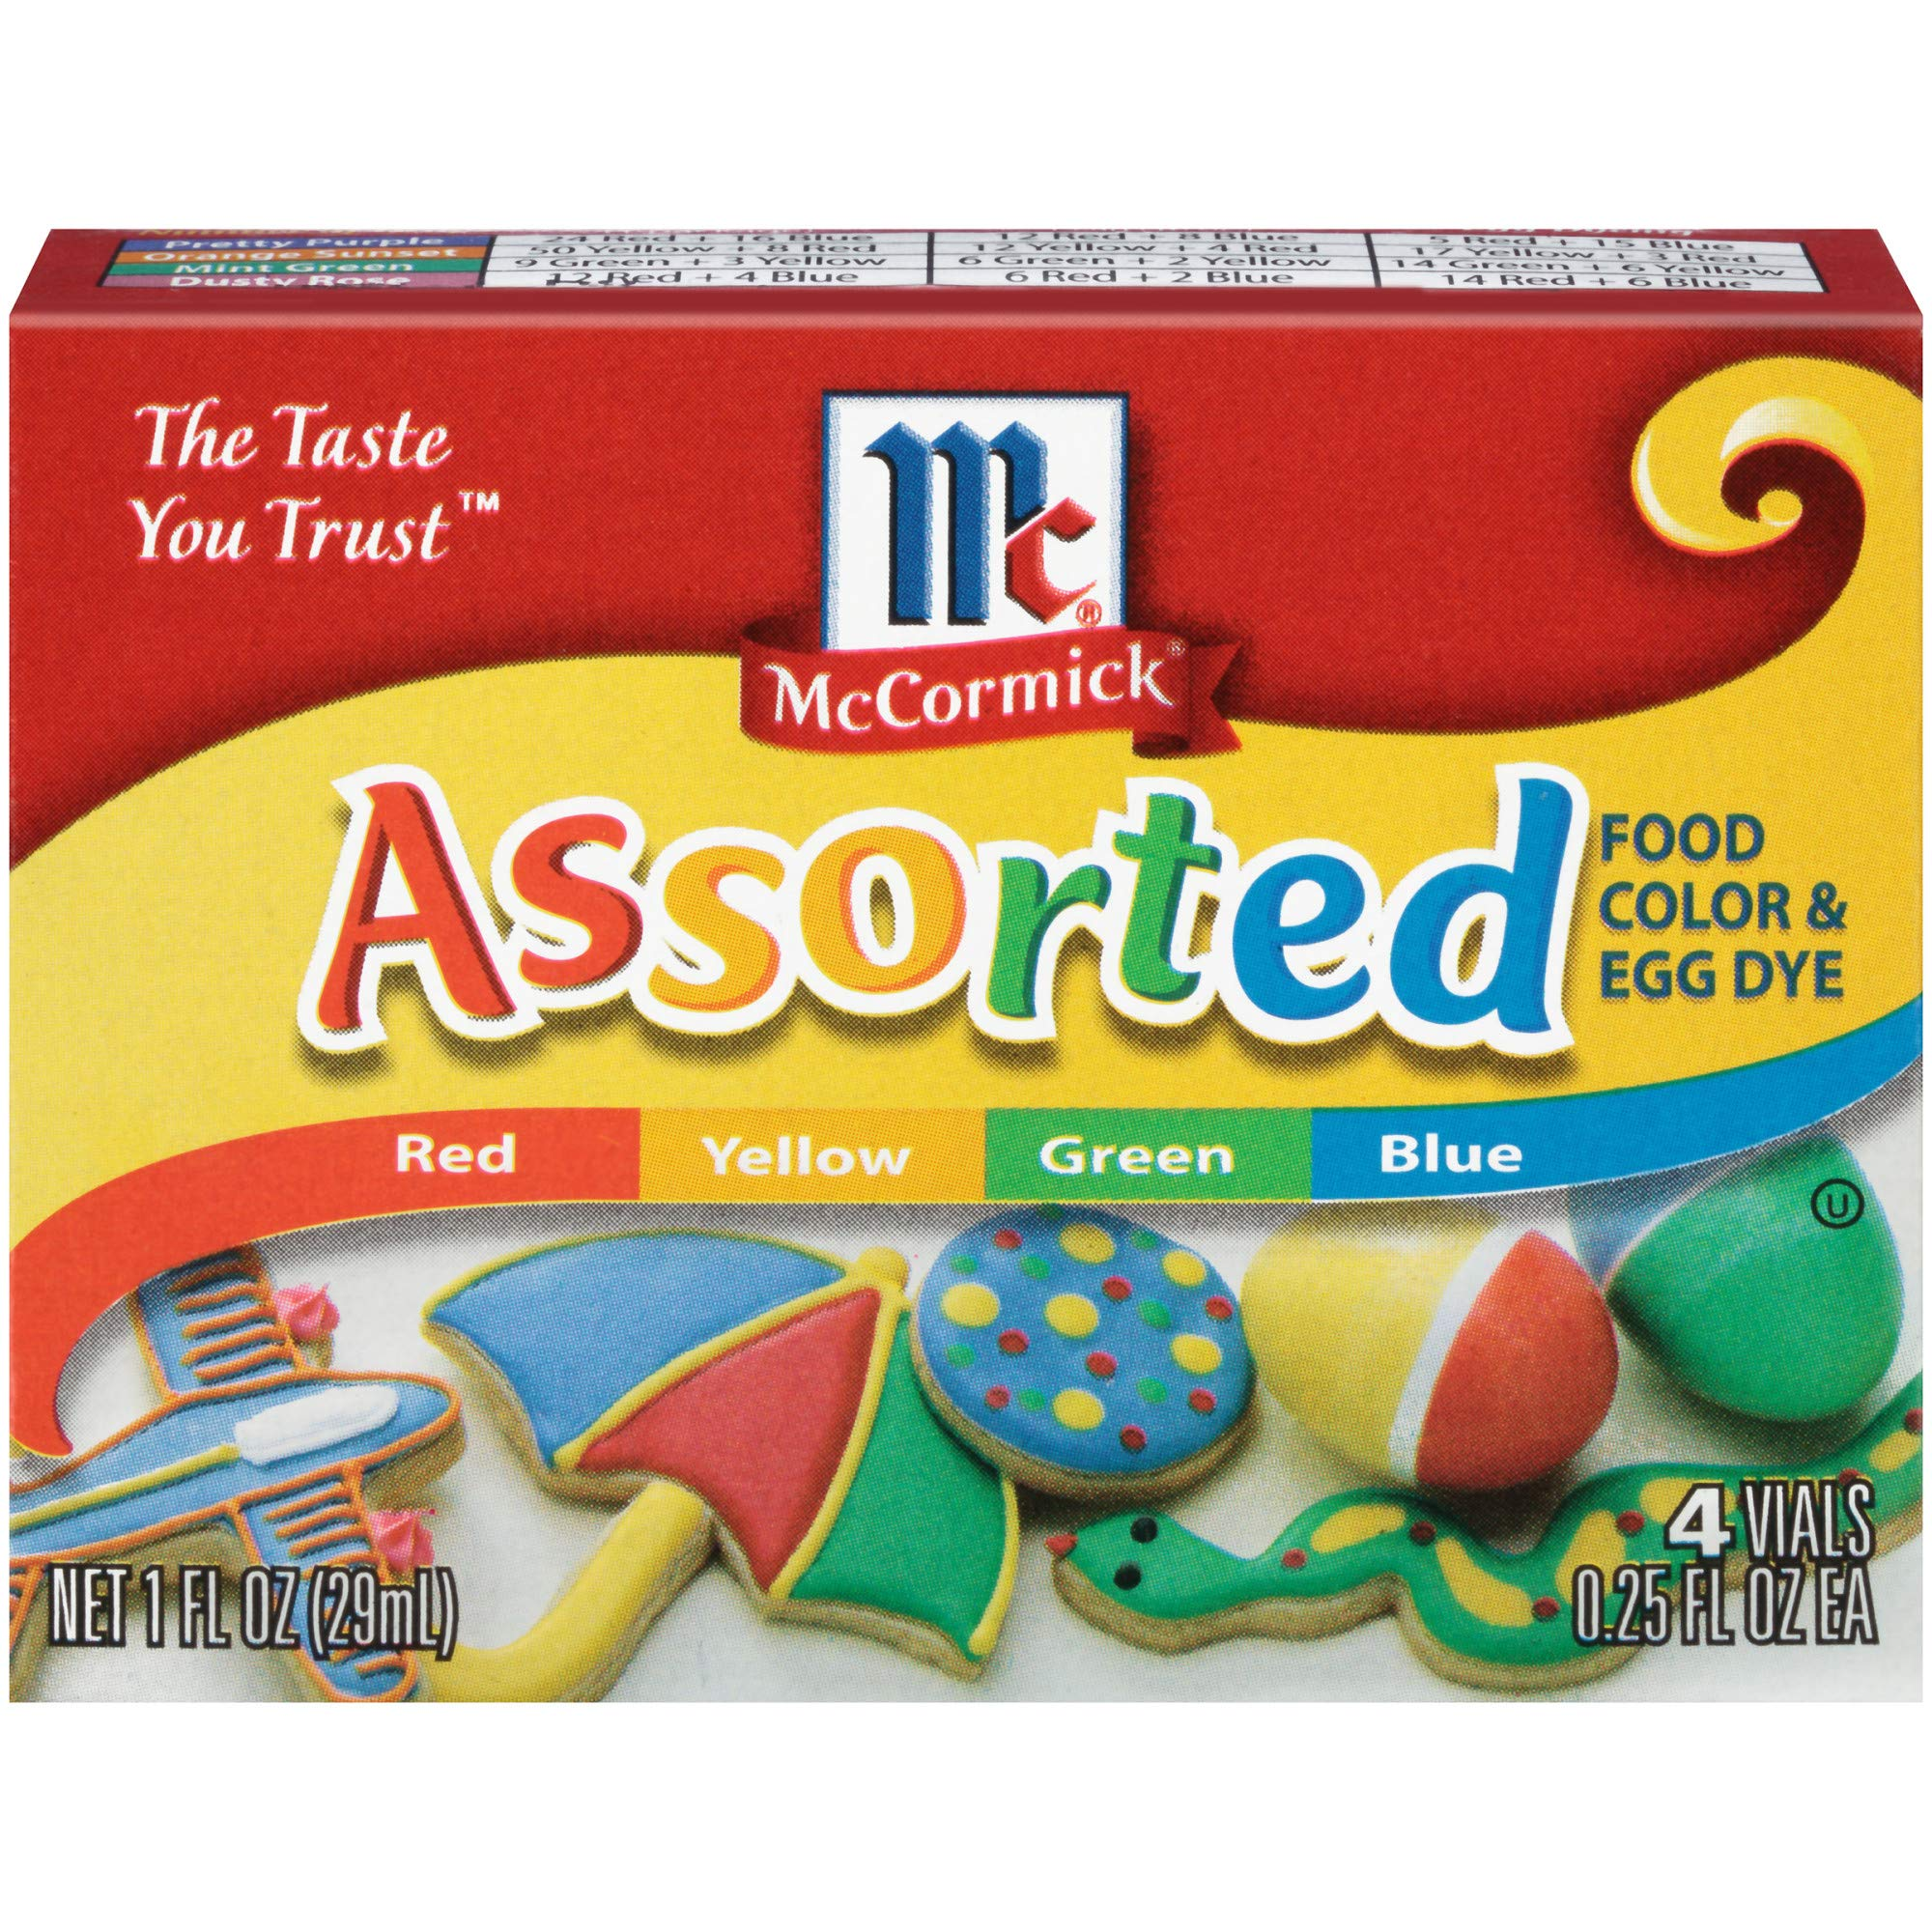 McCormick, Food Coloring & Egg Dye, Four Assorted, 1oz Box (Pack of 3)